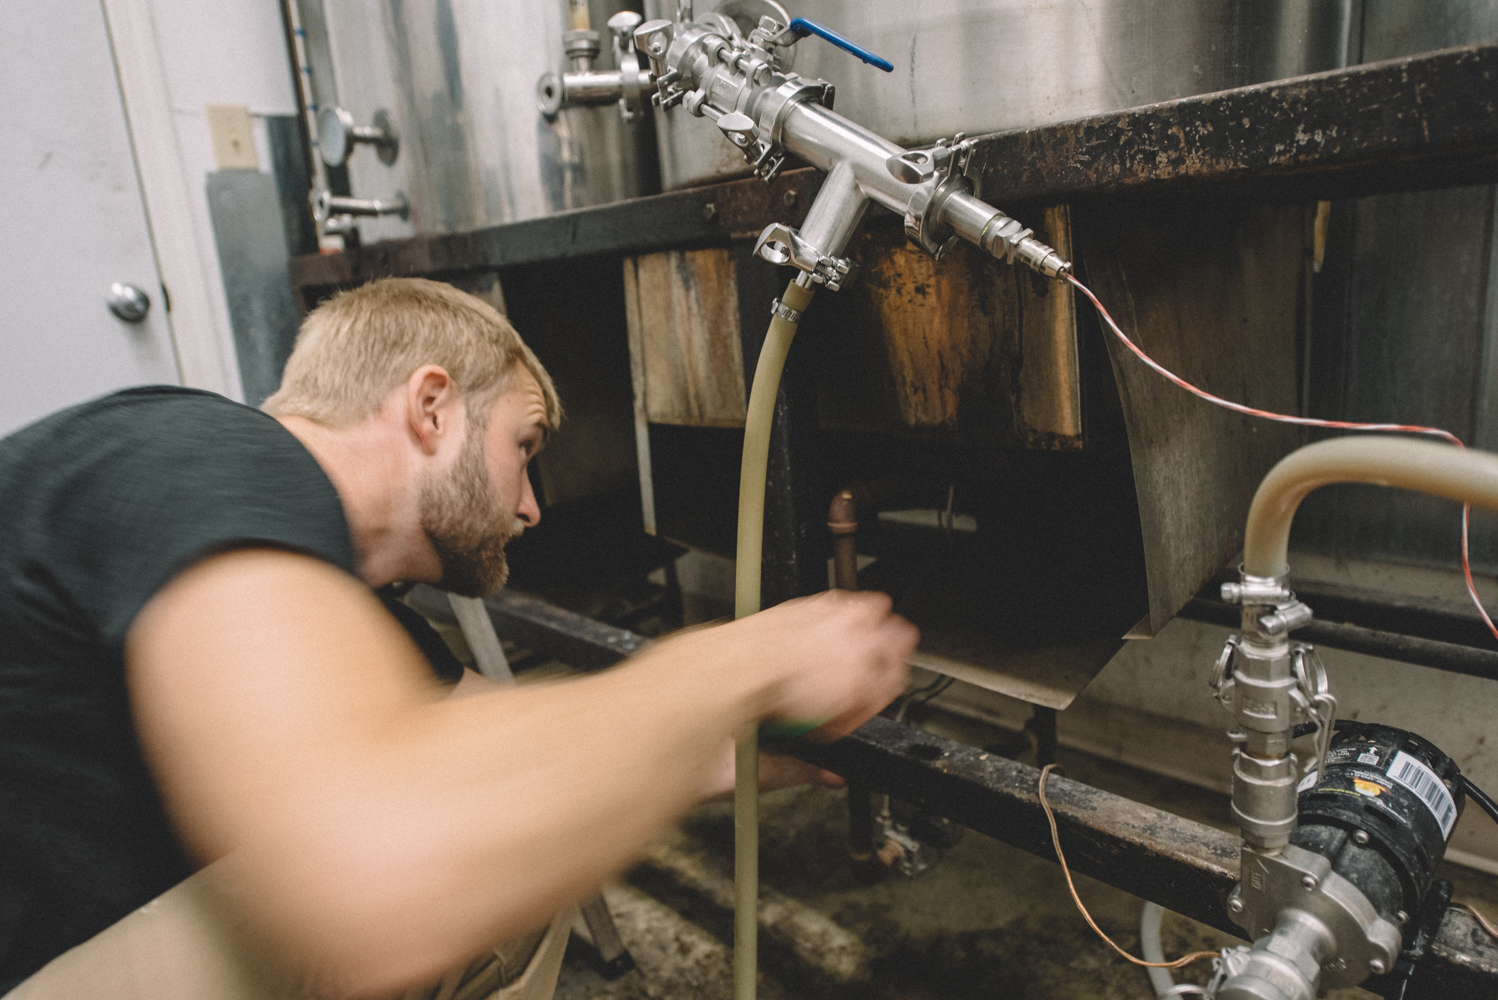 Scratch-Brewing-Co-Carbondale-Ava-Illinois-Good-Beer-Hunting-Matt-Sampson-Photography-8.jpg